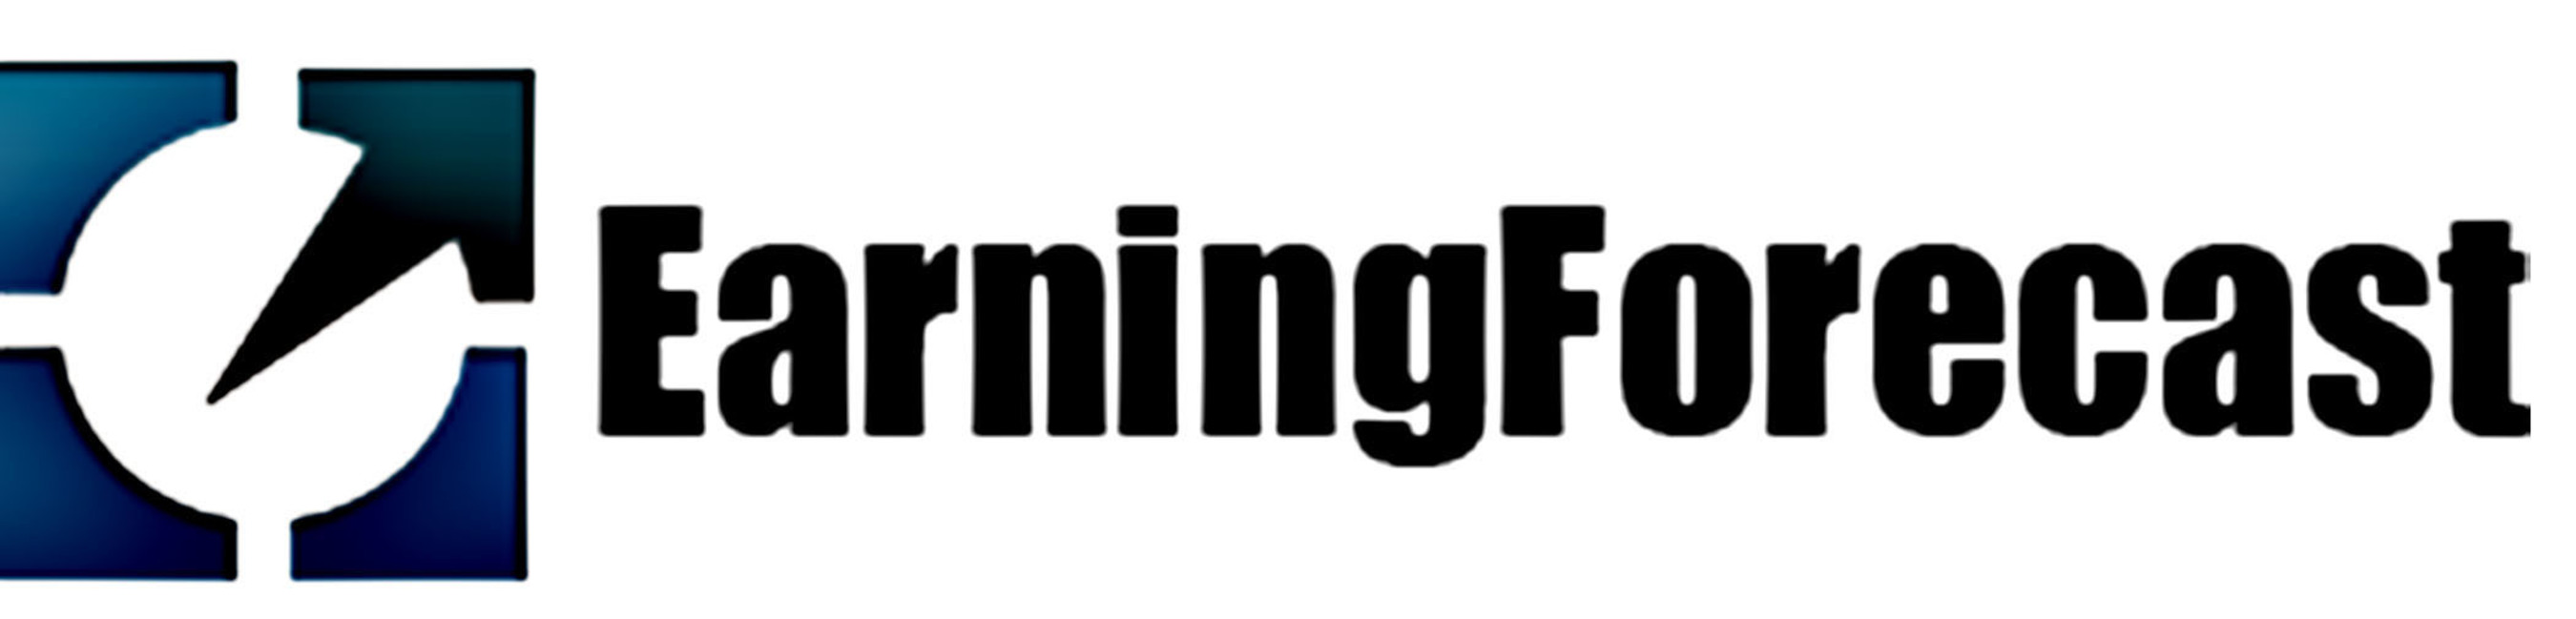 EarningForecast logo